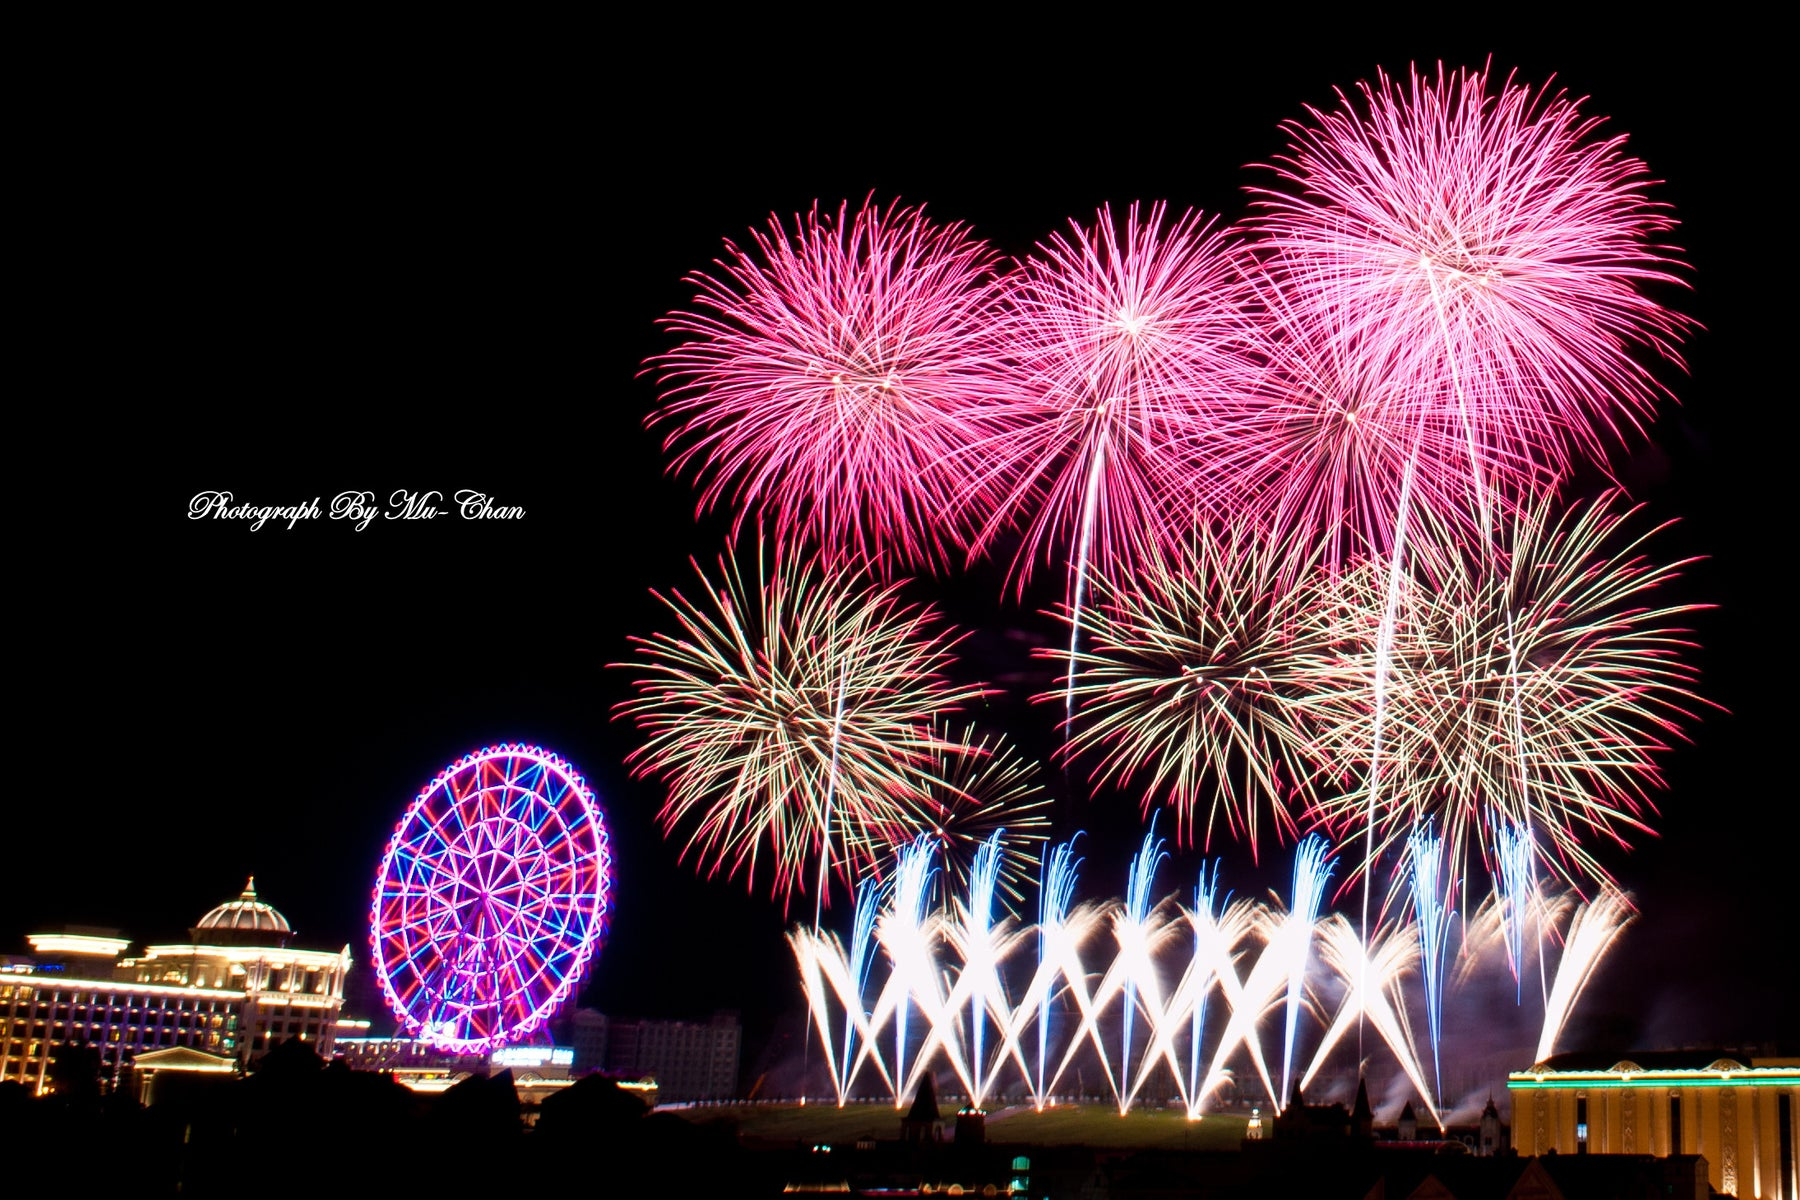 Fireworks lights up Da Nang sky